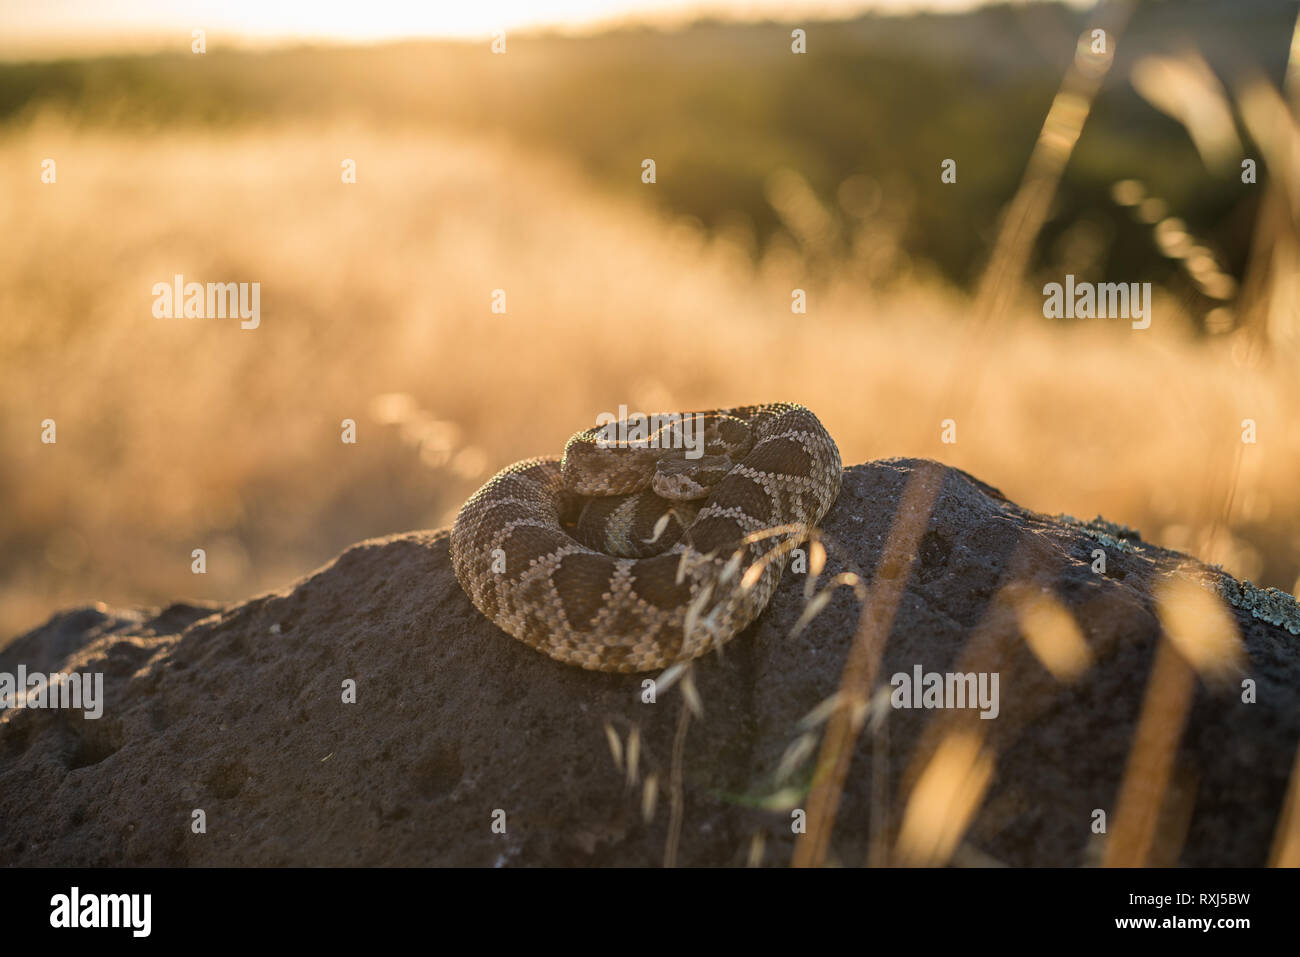 Northern Pacific Rattlesnake coiled on top of a rock, late on a summer afternoon near an oak woodland hillside. - Stock Image